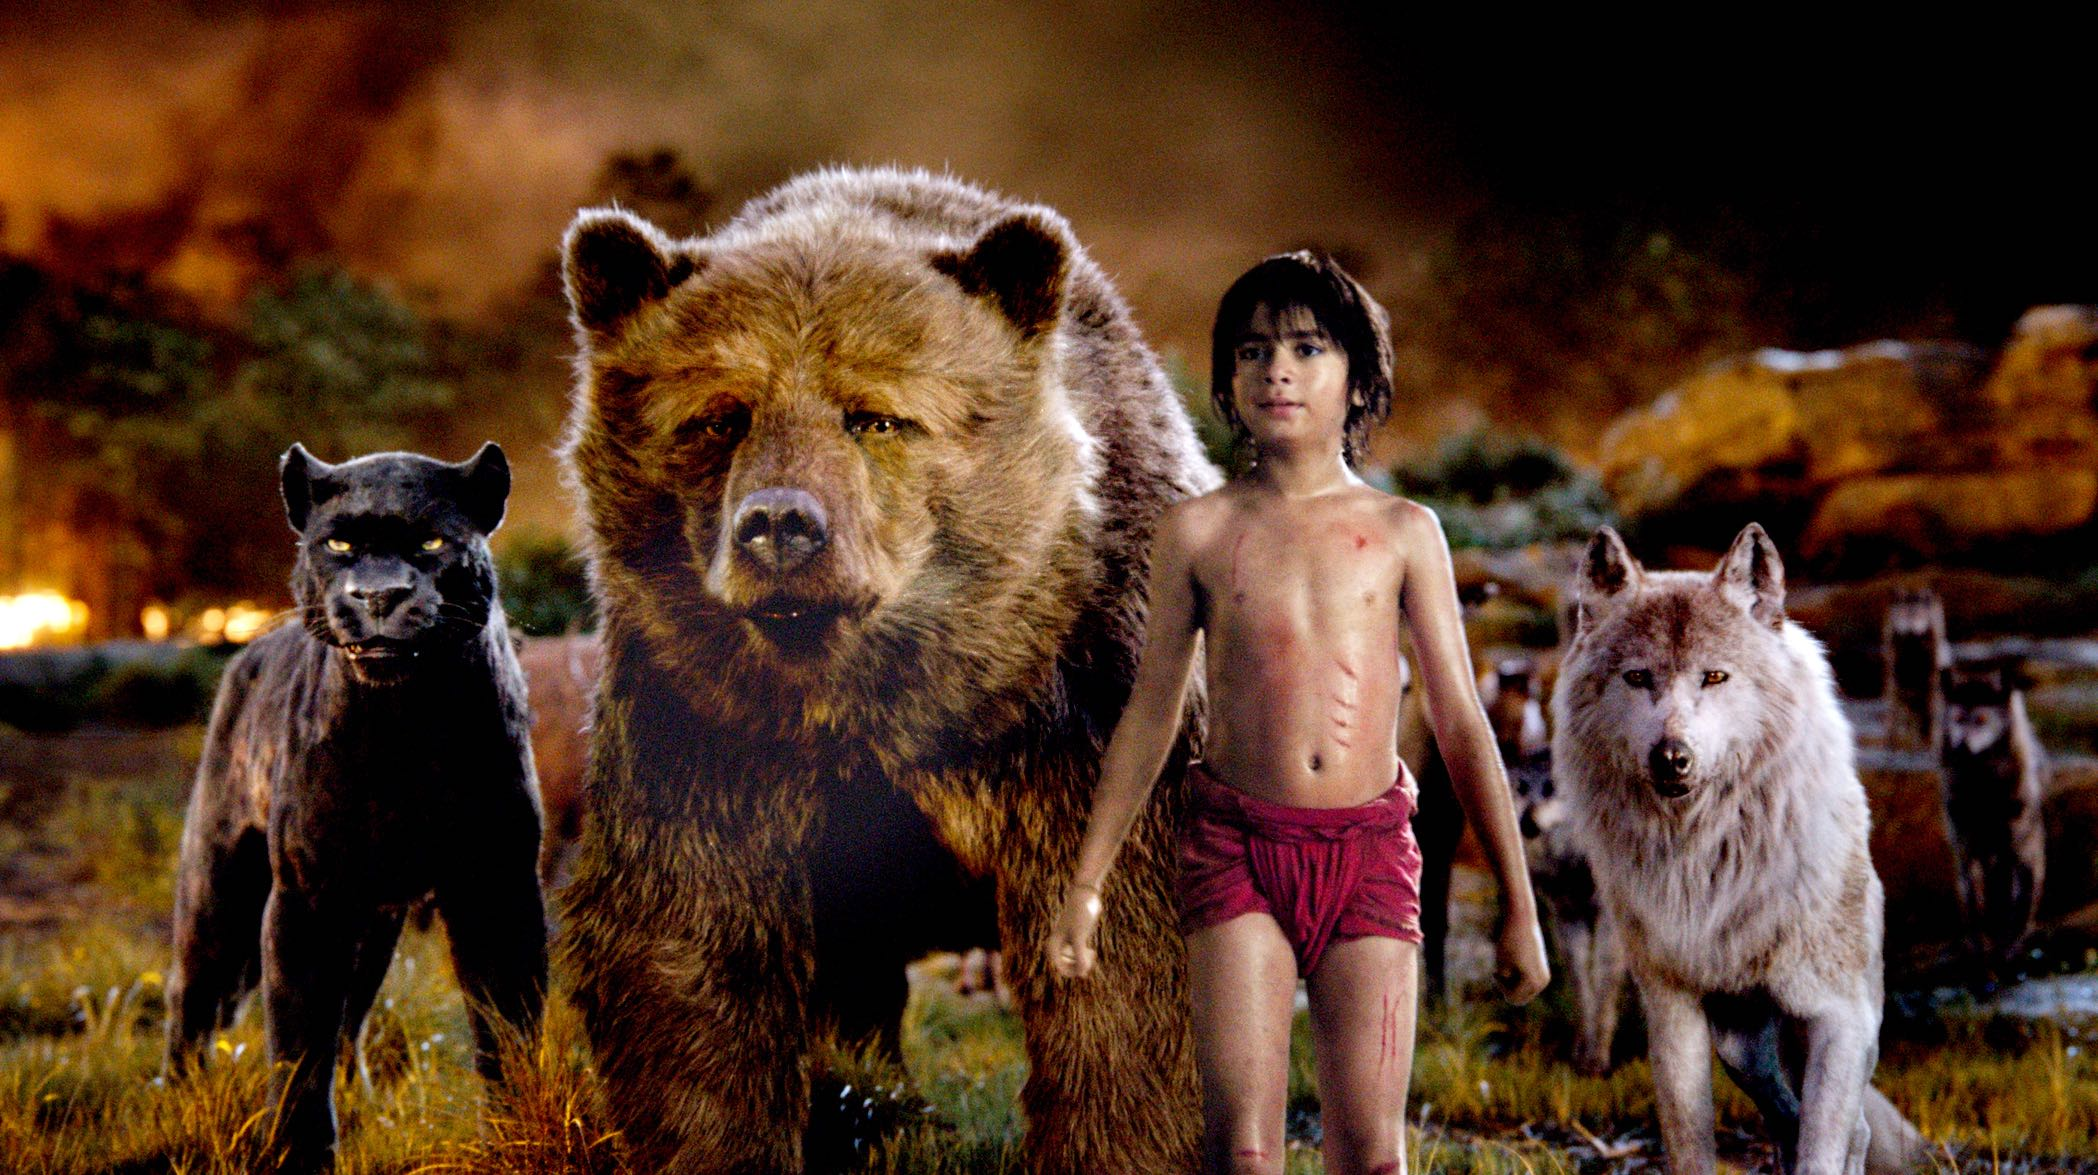 'The Jungle Book'